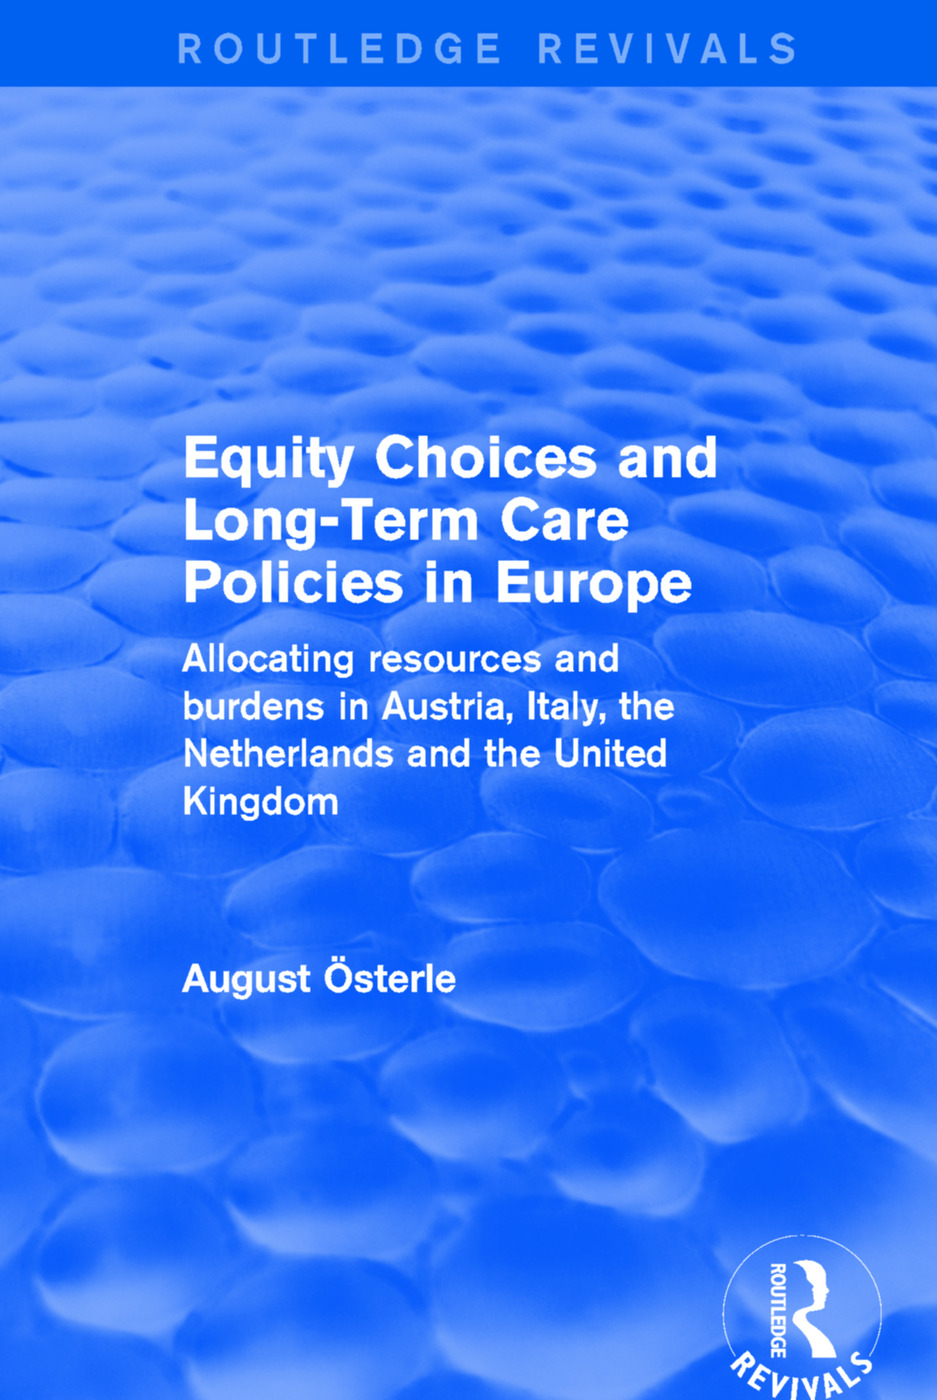 Revival: Equity Choices and Long-Term Care Policies in Europe (2001): Allocating Resources and Burdens in Austria, Italy, the Netherlands and the United Kingdom book cover